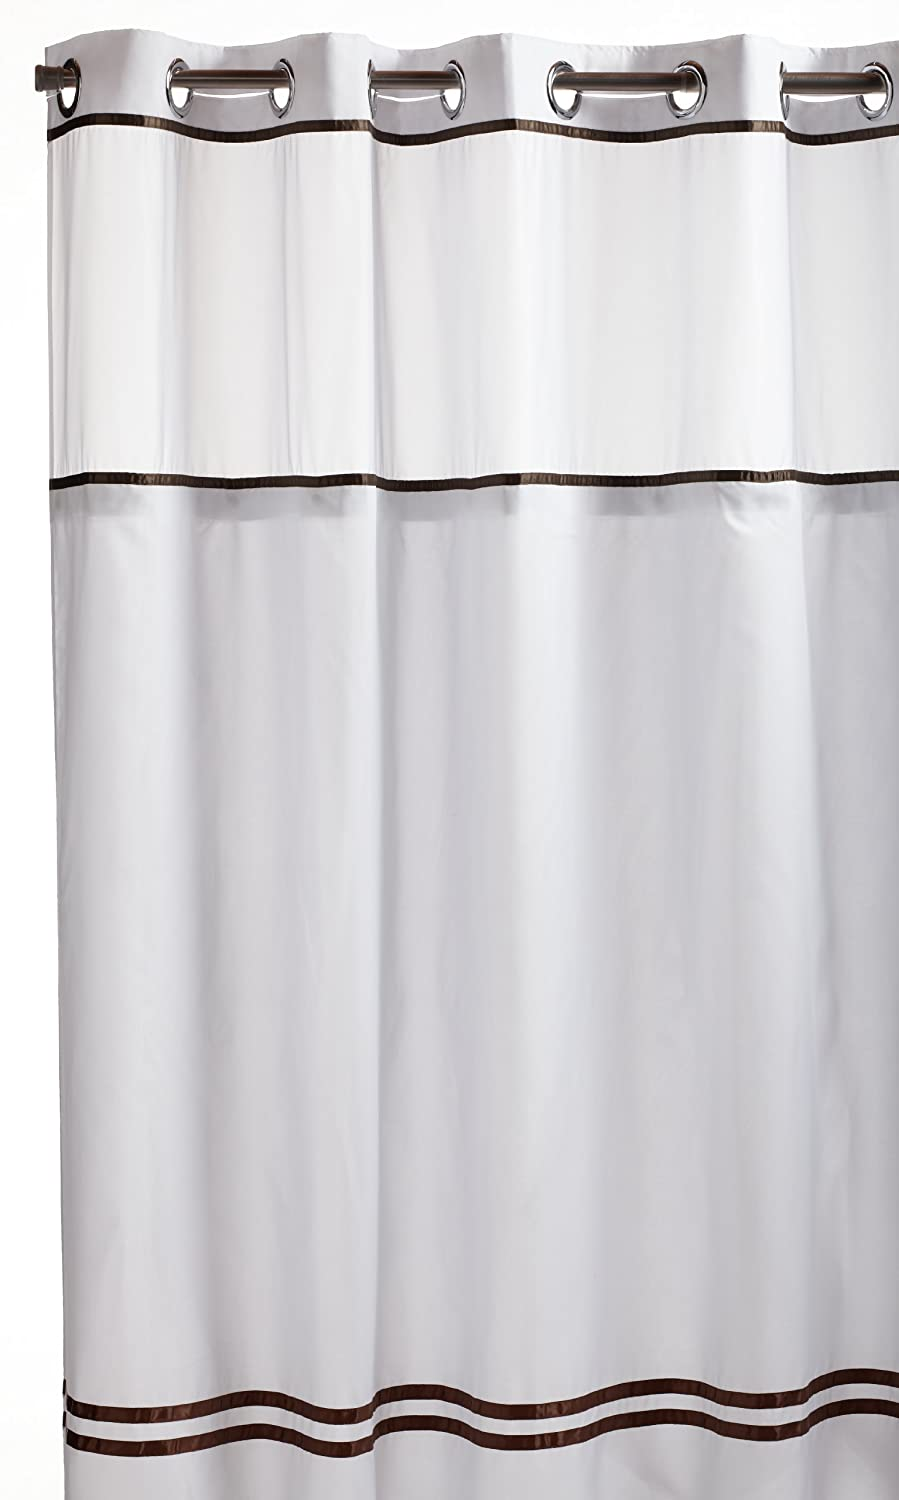 Hookless Shower Curtain Liners Mystery Snap In Peva Liner